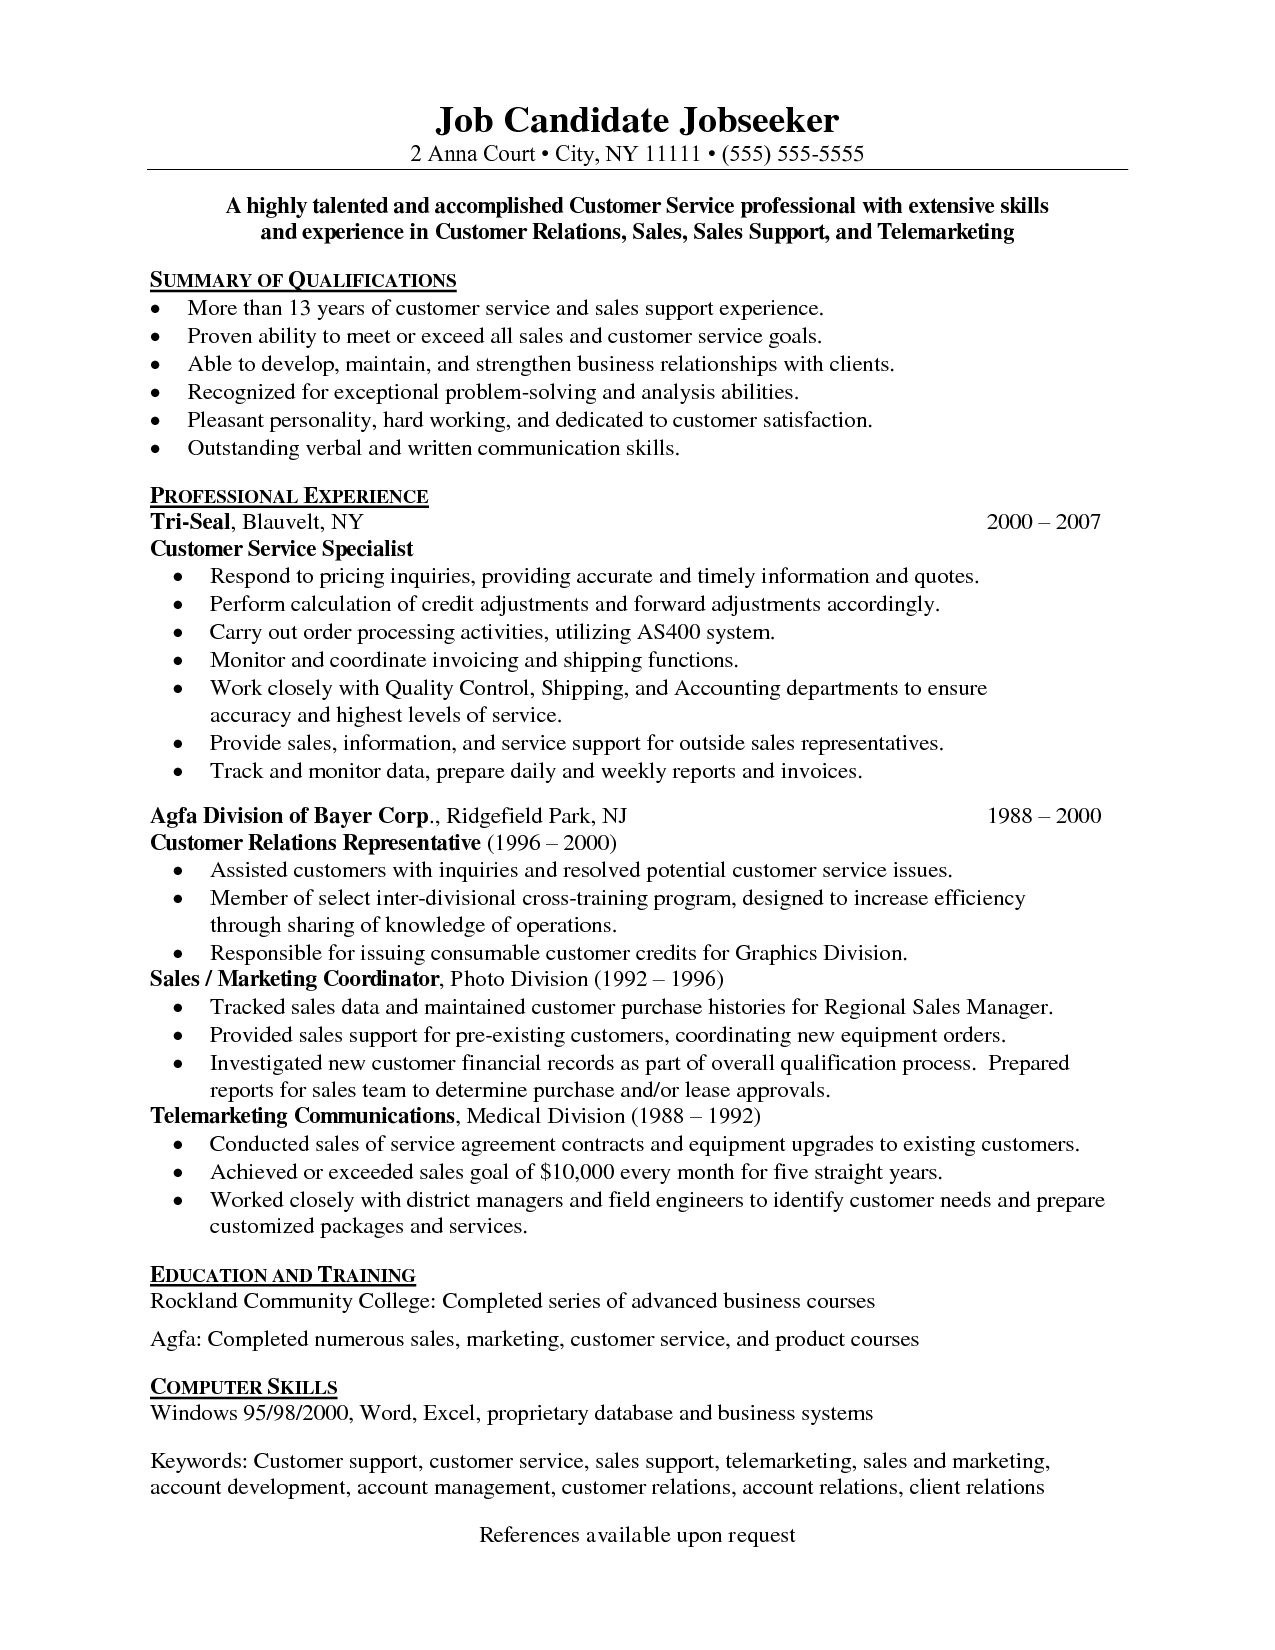 Skills for Customer Service Resume - Resume Skills Examples Customer Service Refrence Beautiful Grapher